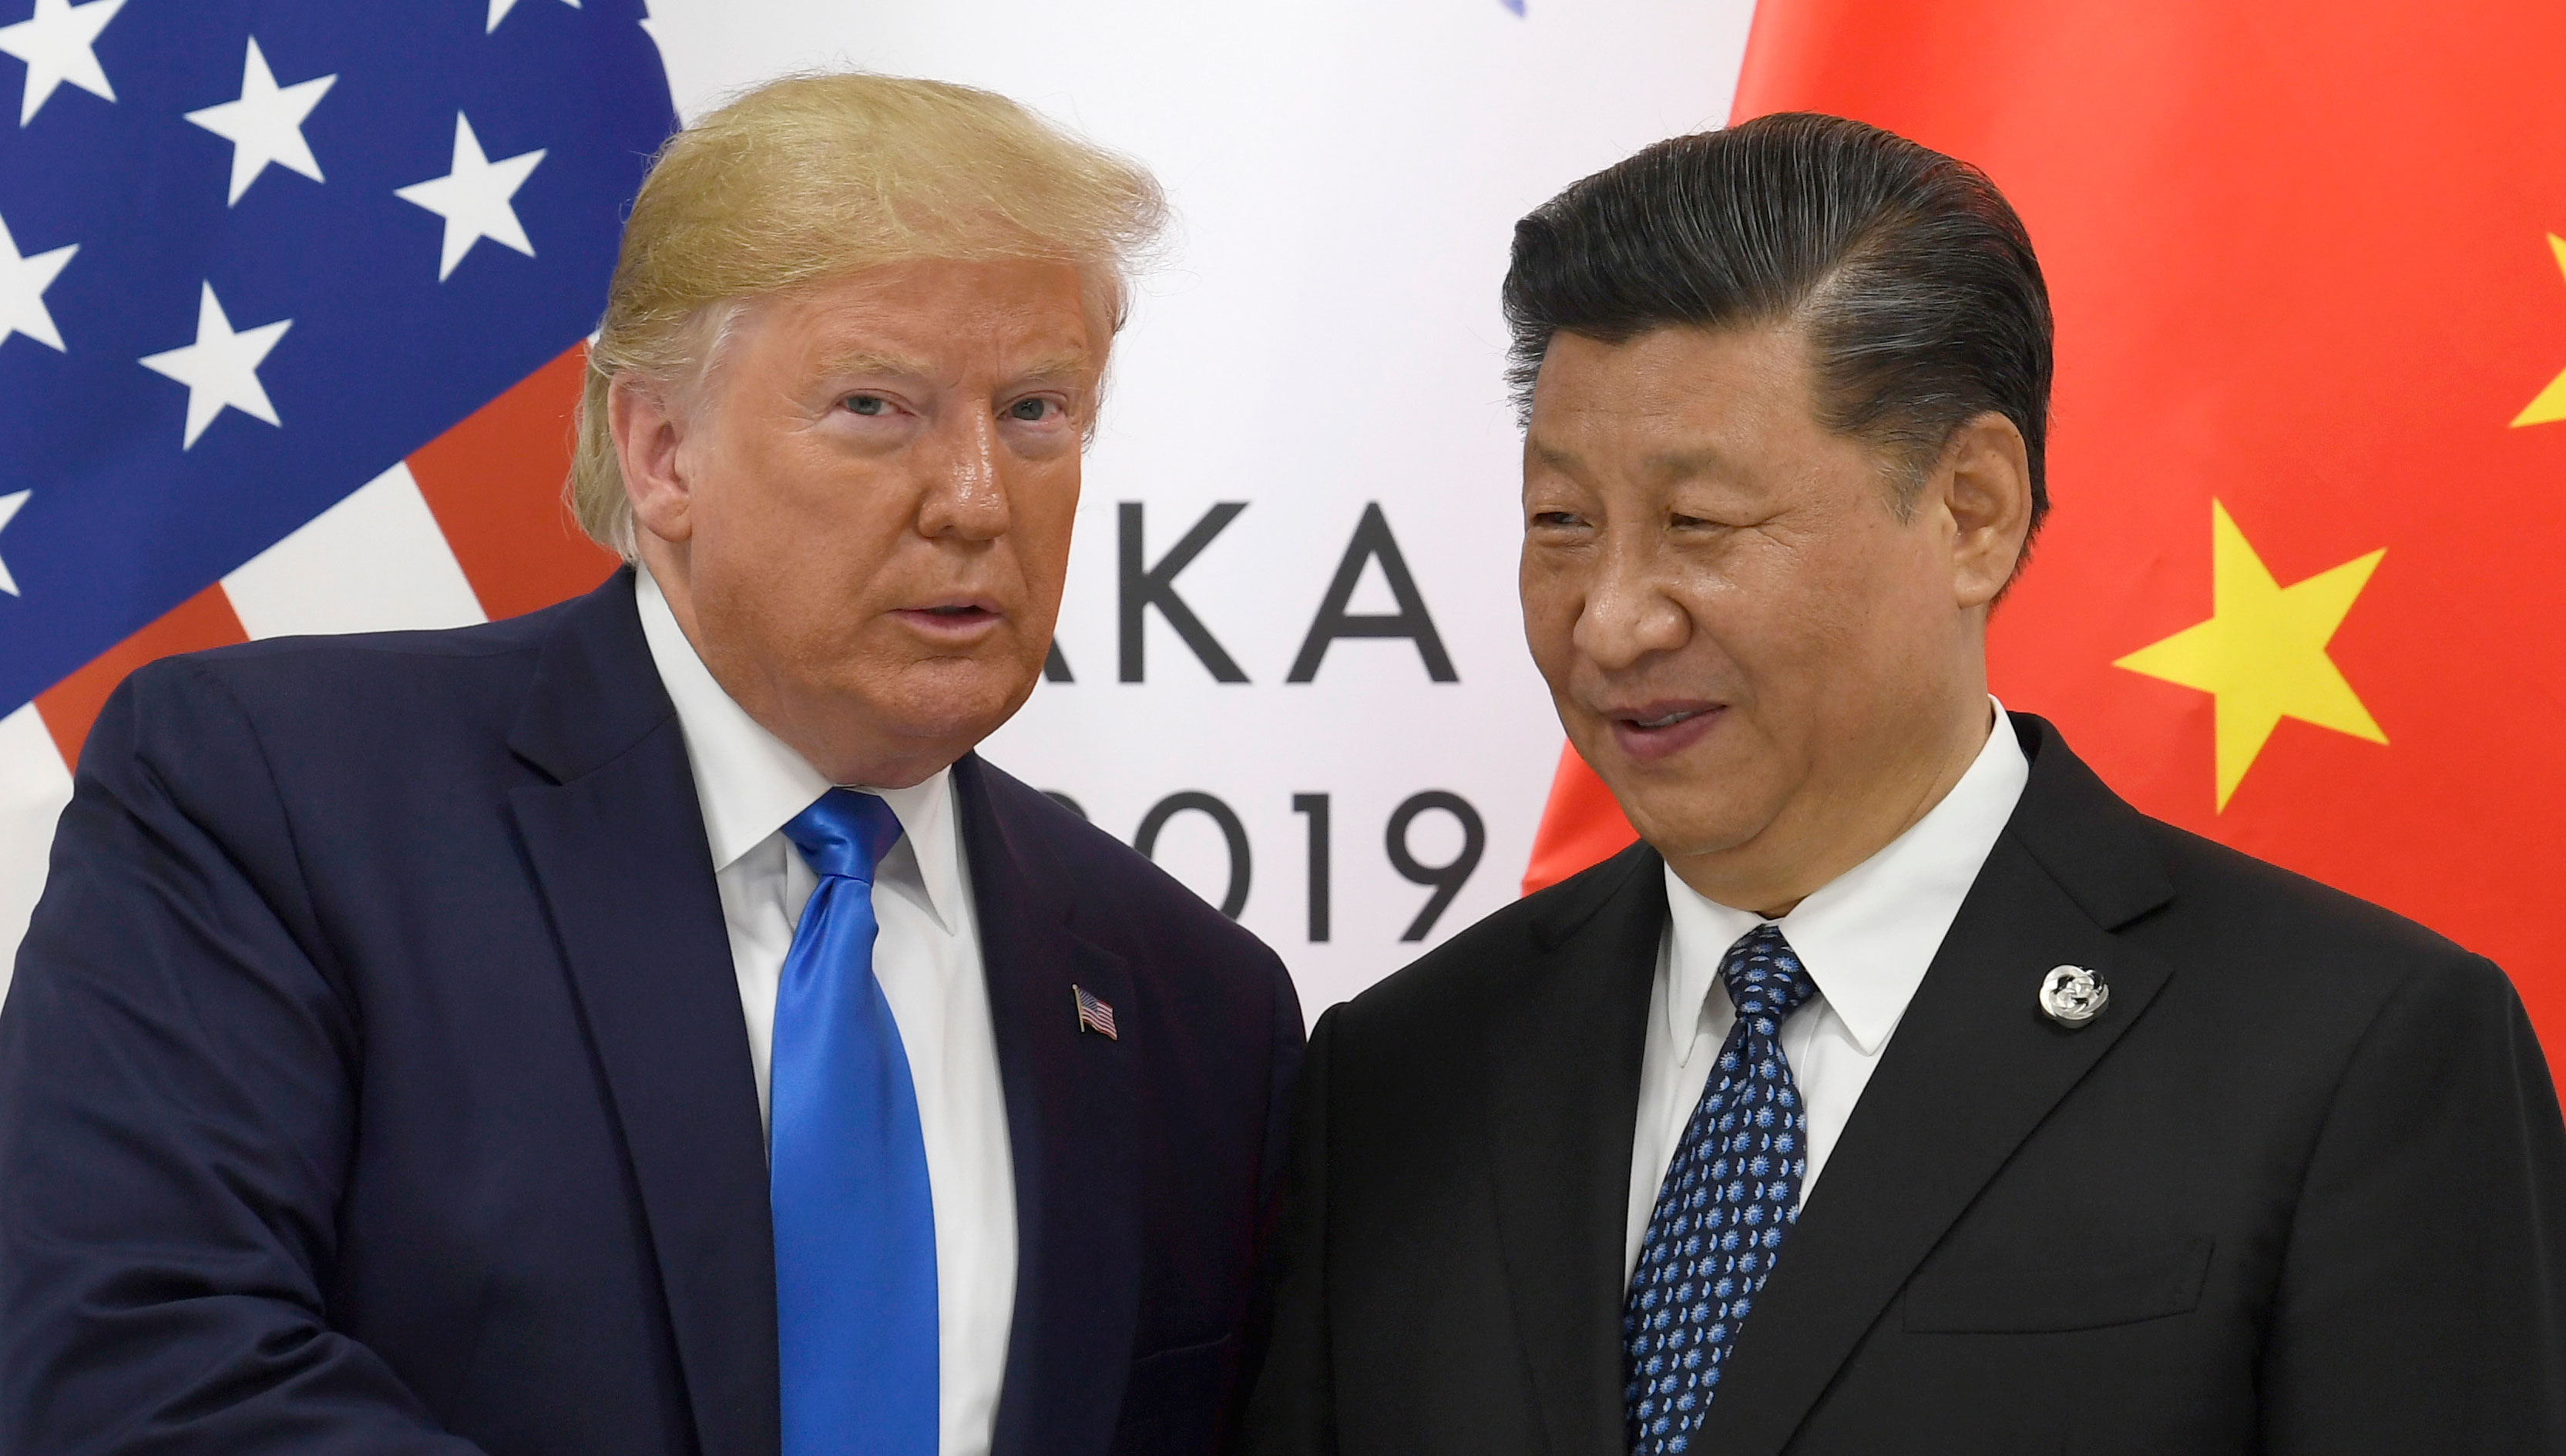 Donald Trump with Xi Jinping during a meeting on the sidelines of the G20 summit in Osaka, Japan, on, June 29, 2019.